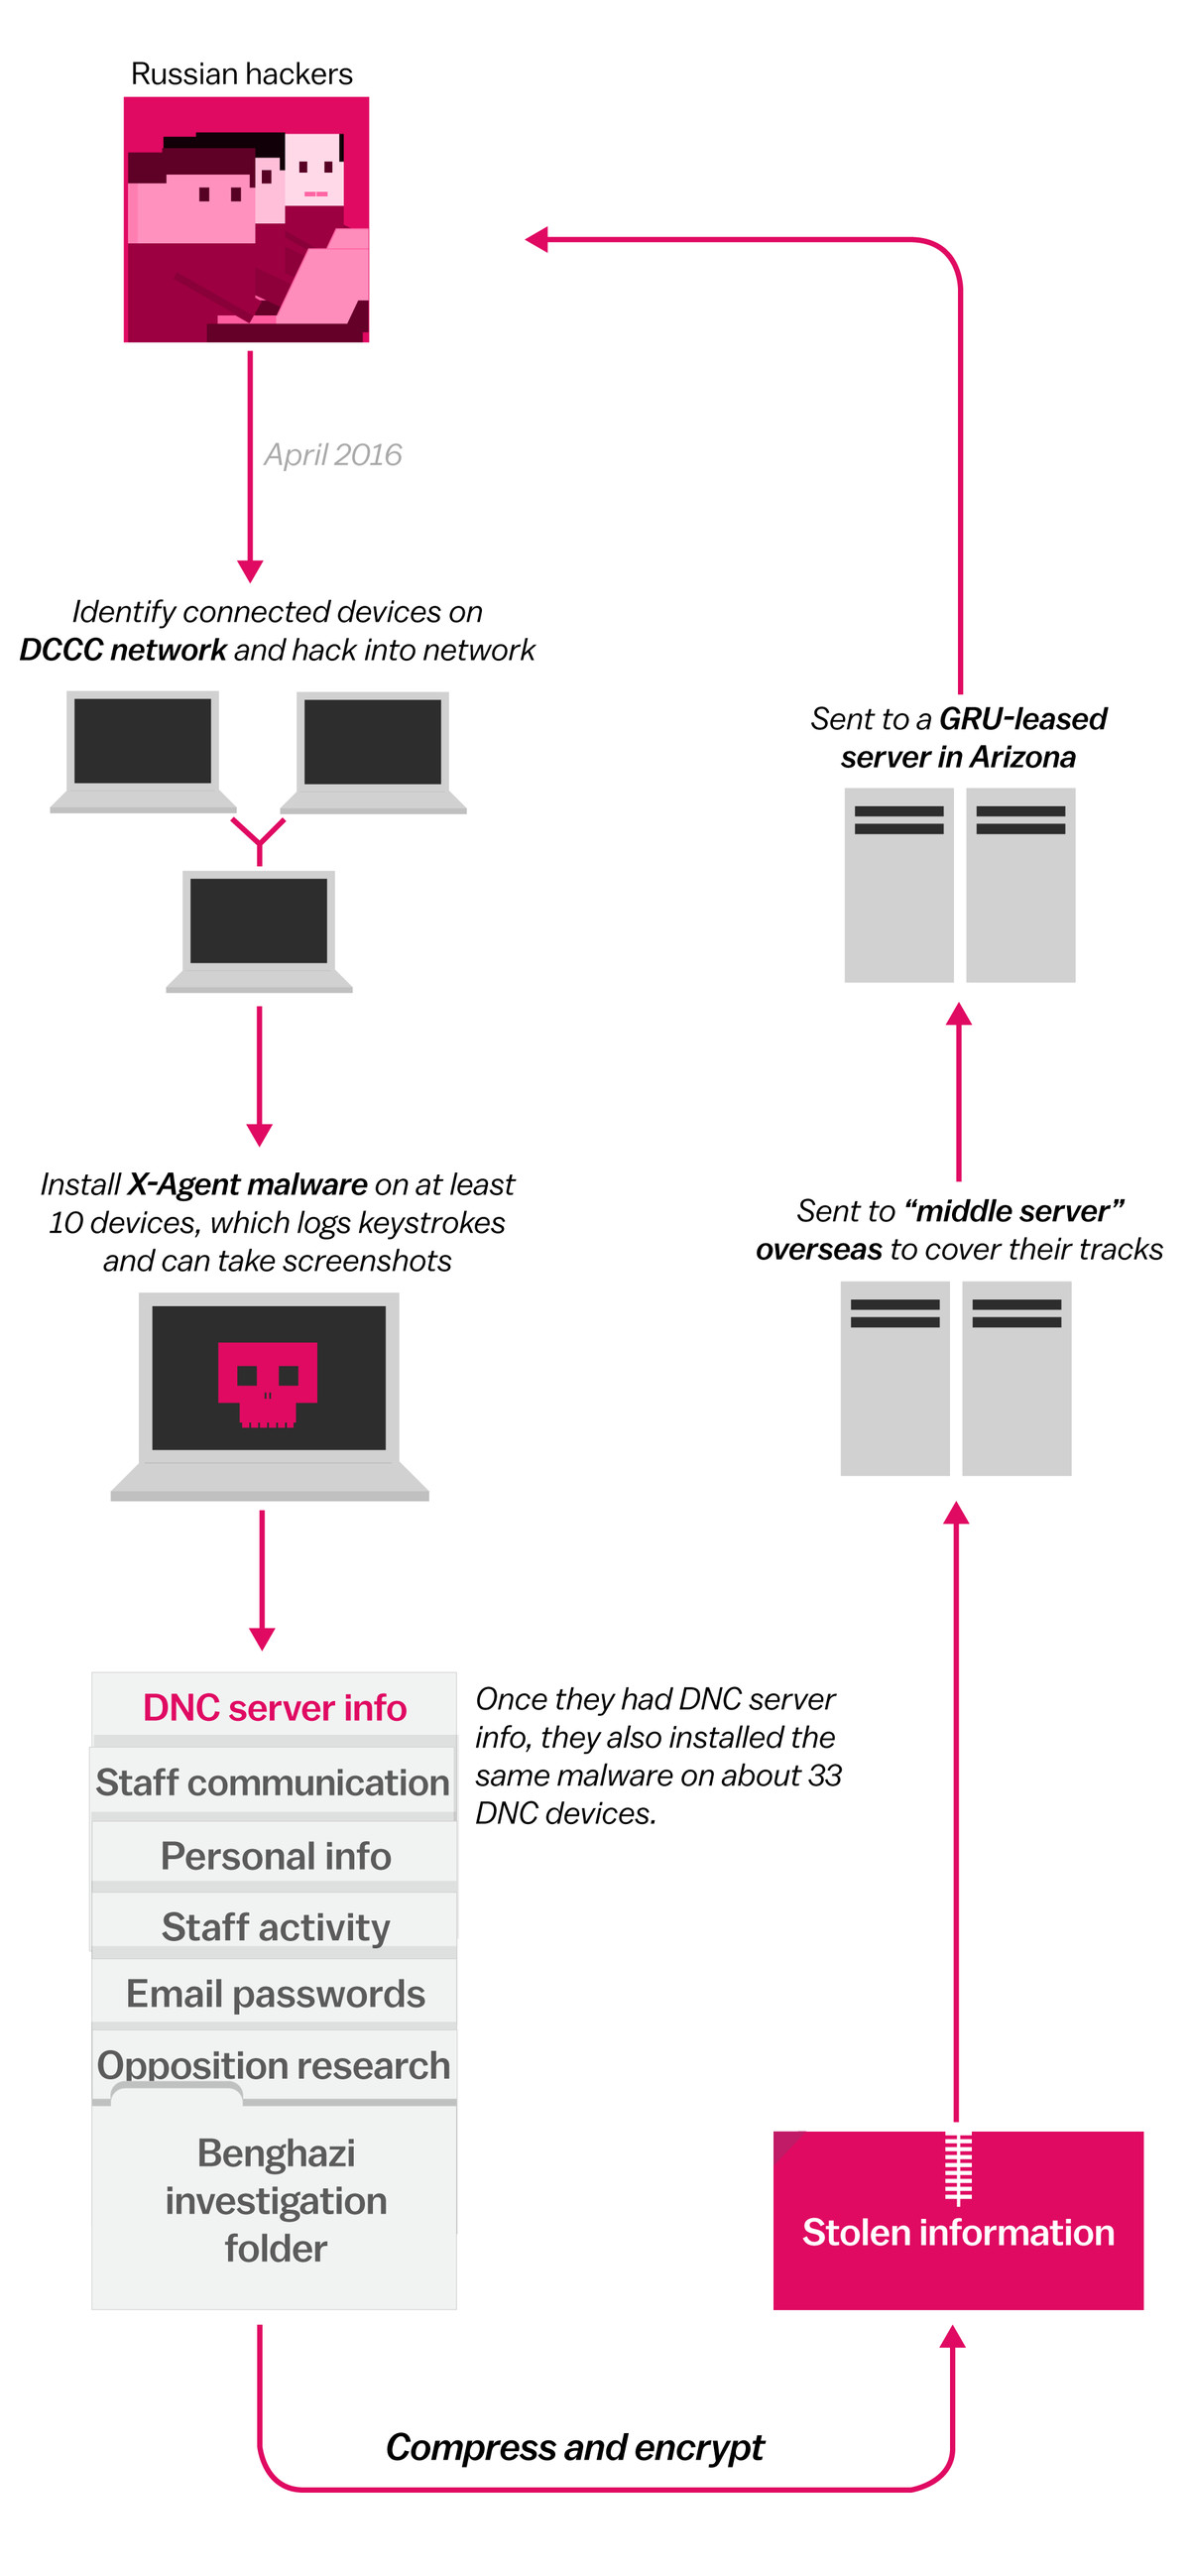 How Russian hackers stole information from Democrats, in 3 diagrams